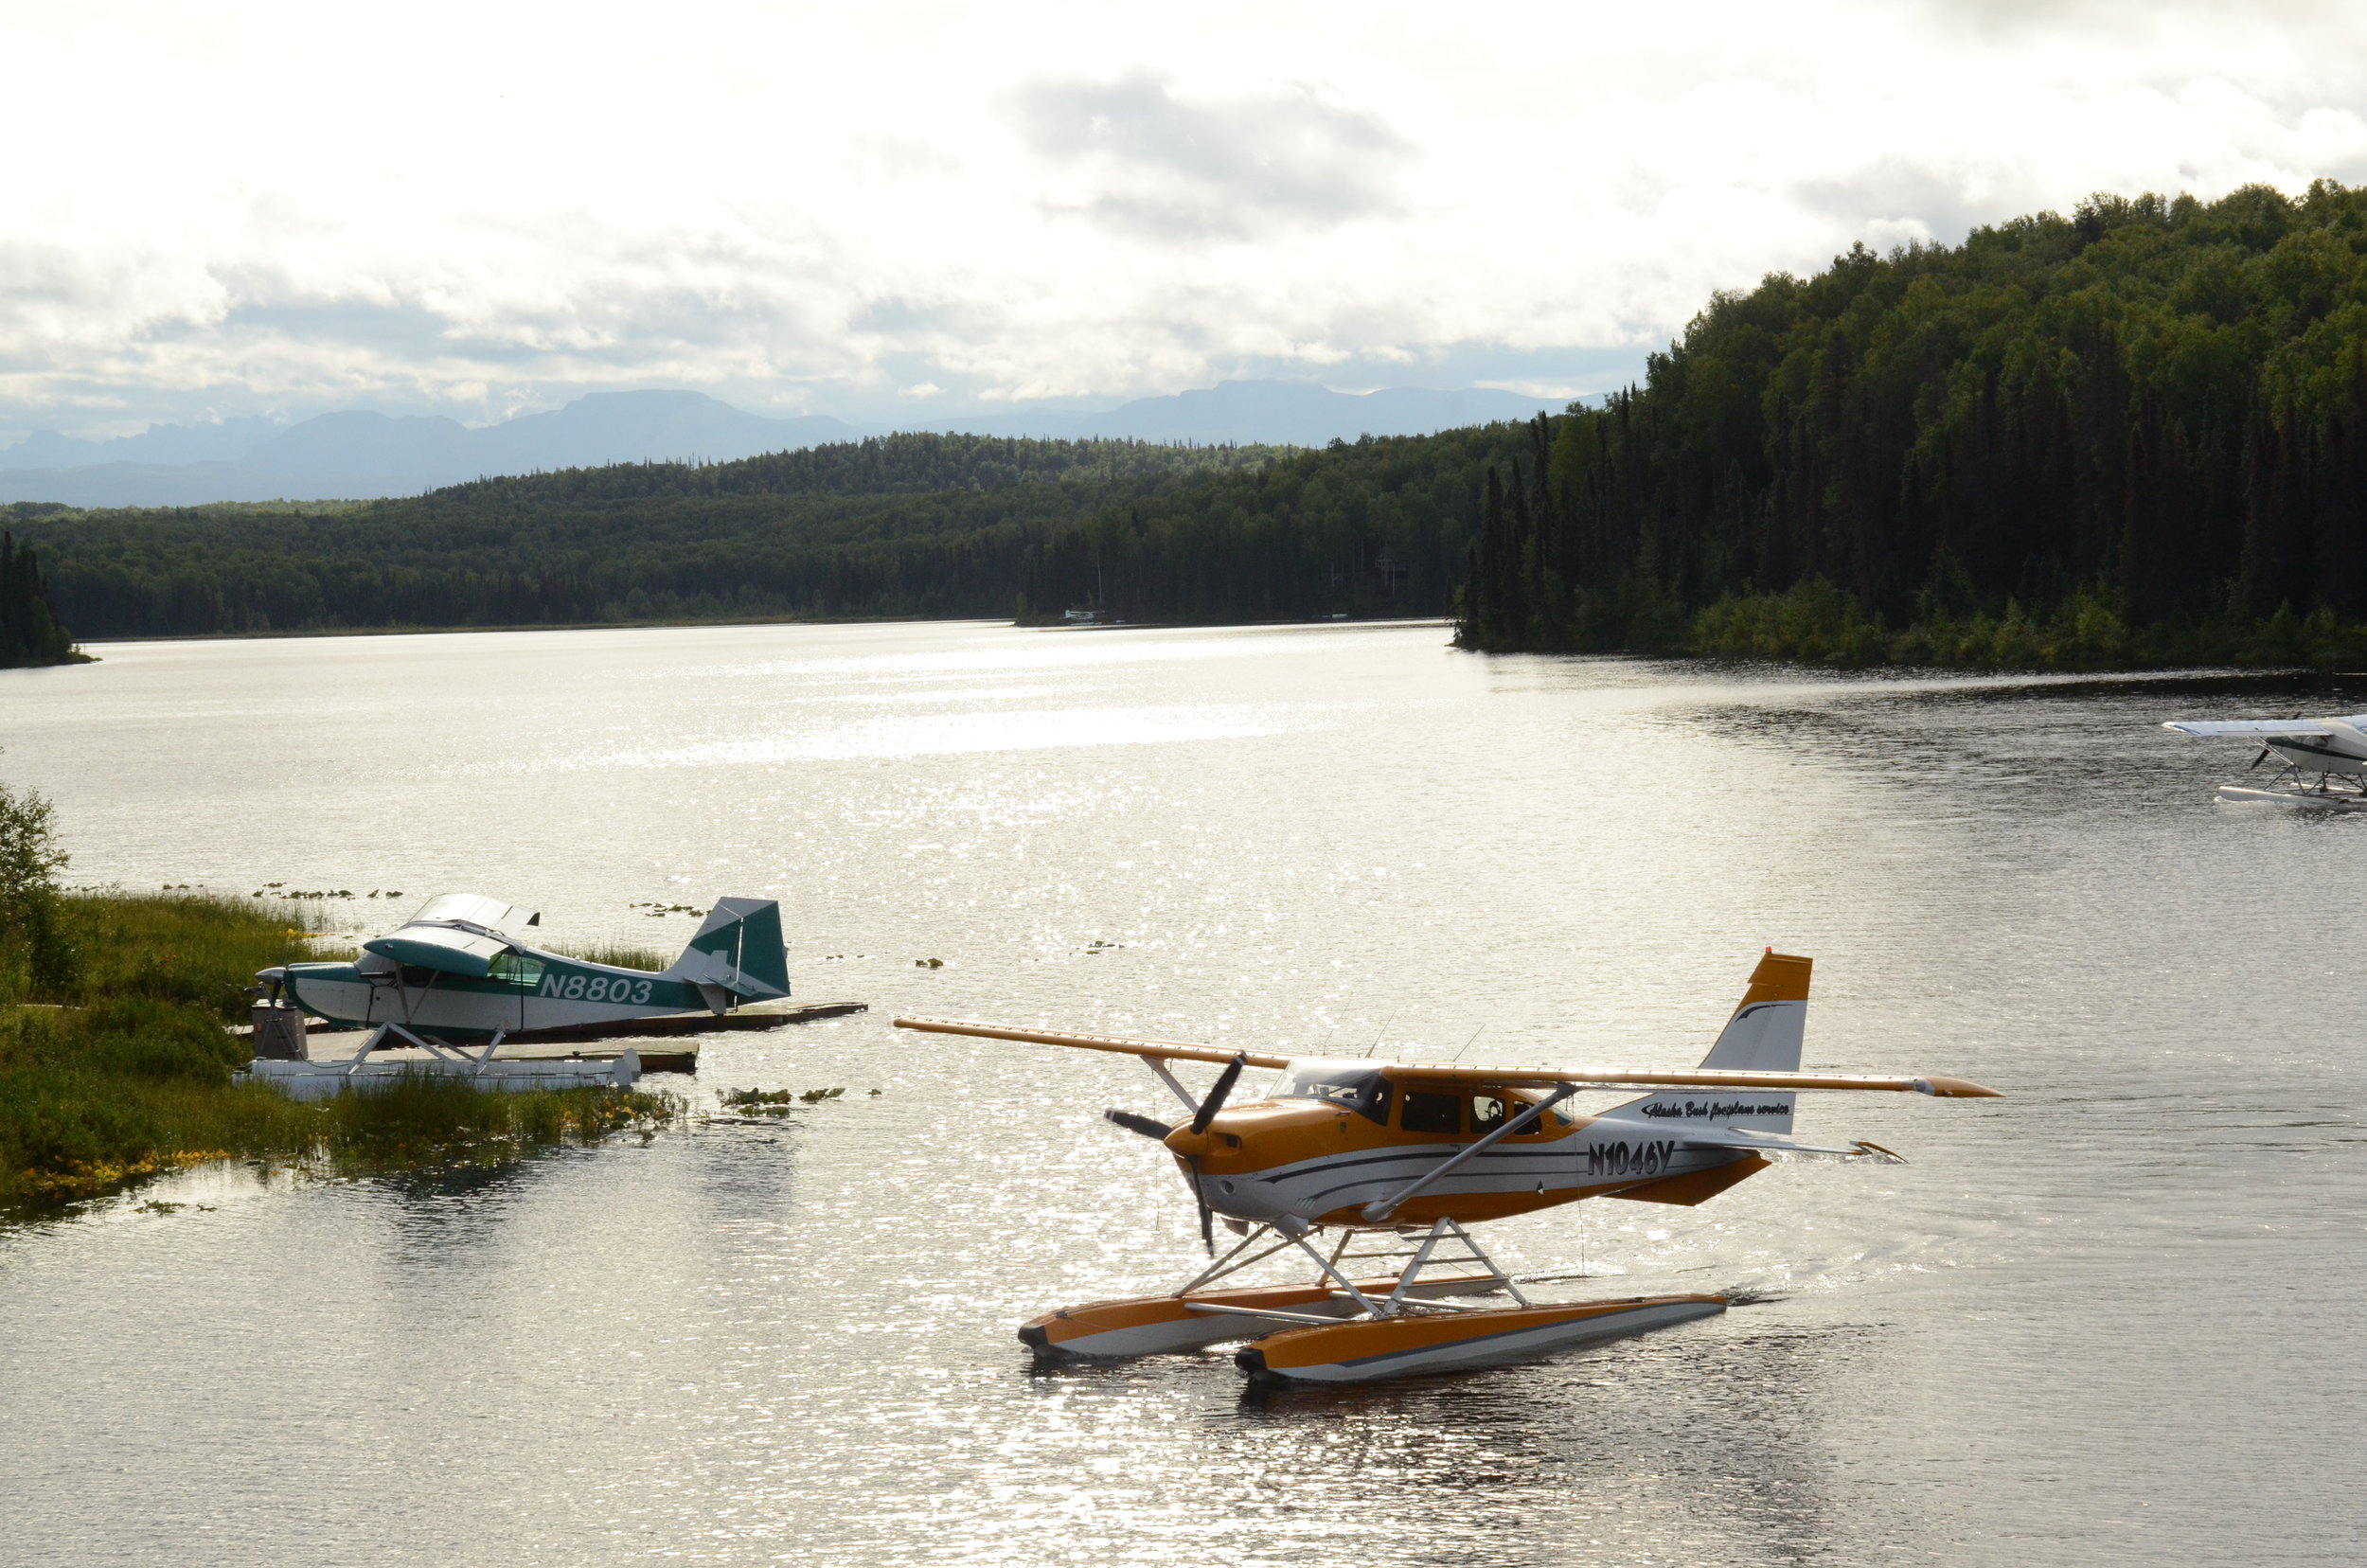 """How big is Alaska? There's a whole industry based on flying tourists to attractions you can't get to by car, or just to get a good look at the scenery. They call it """"flightseeing."""""""